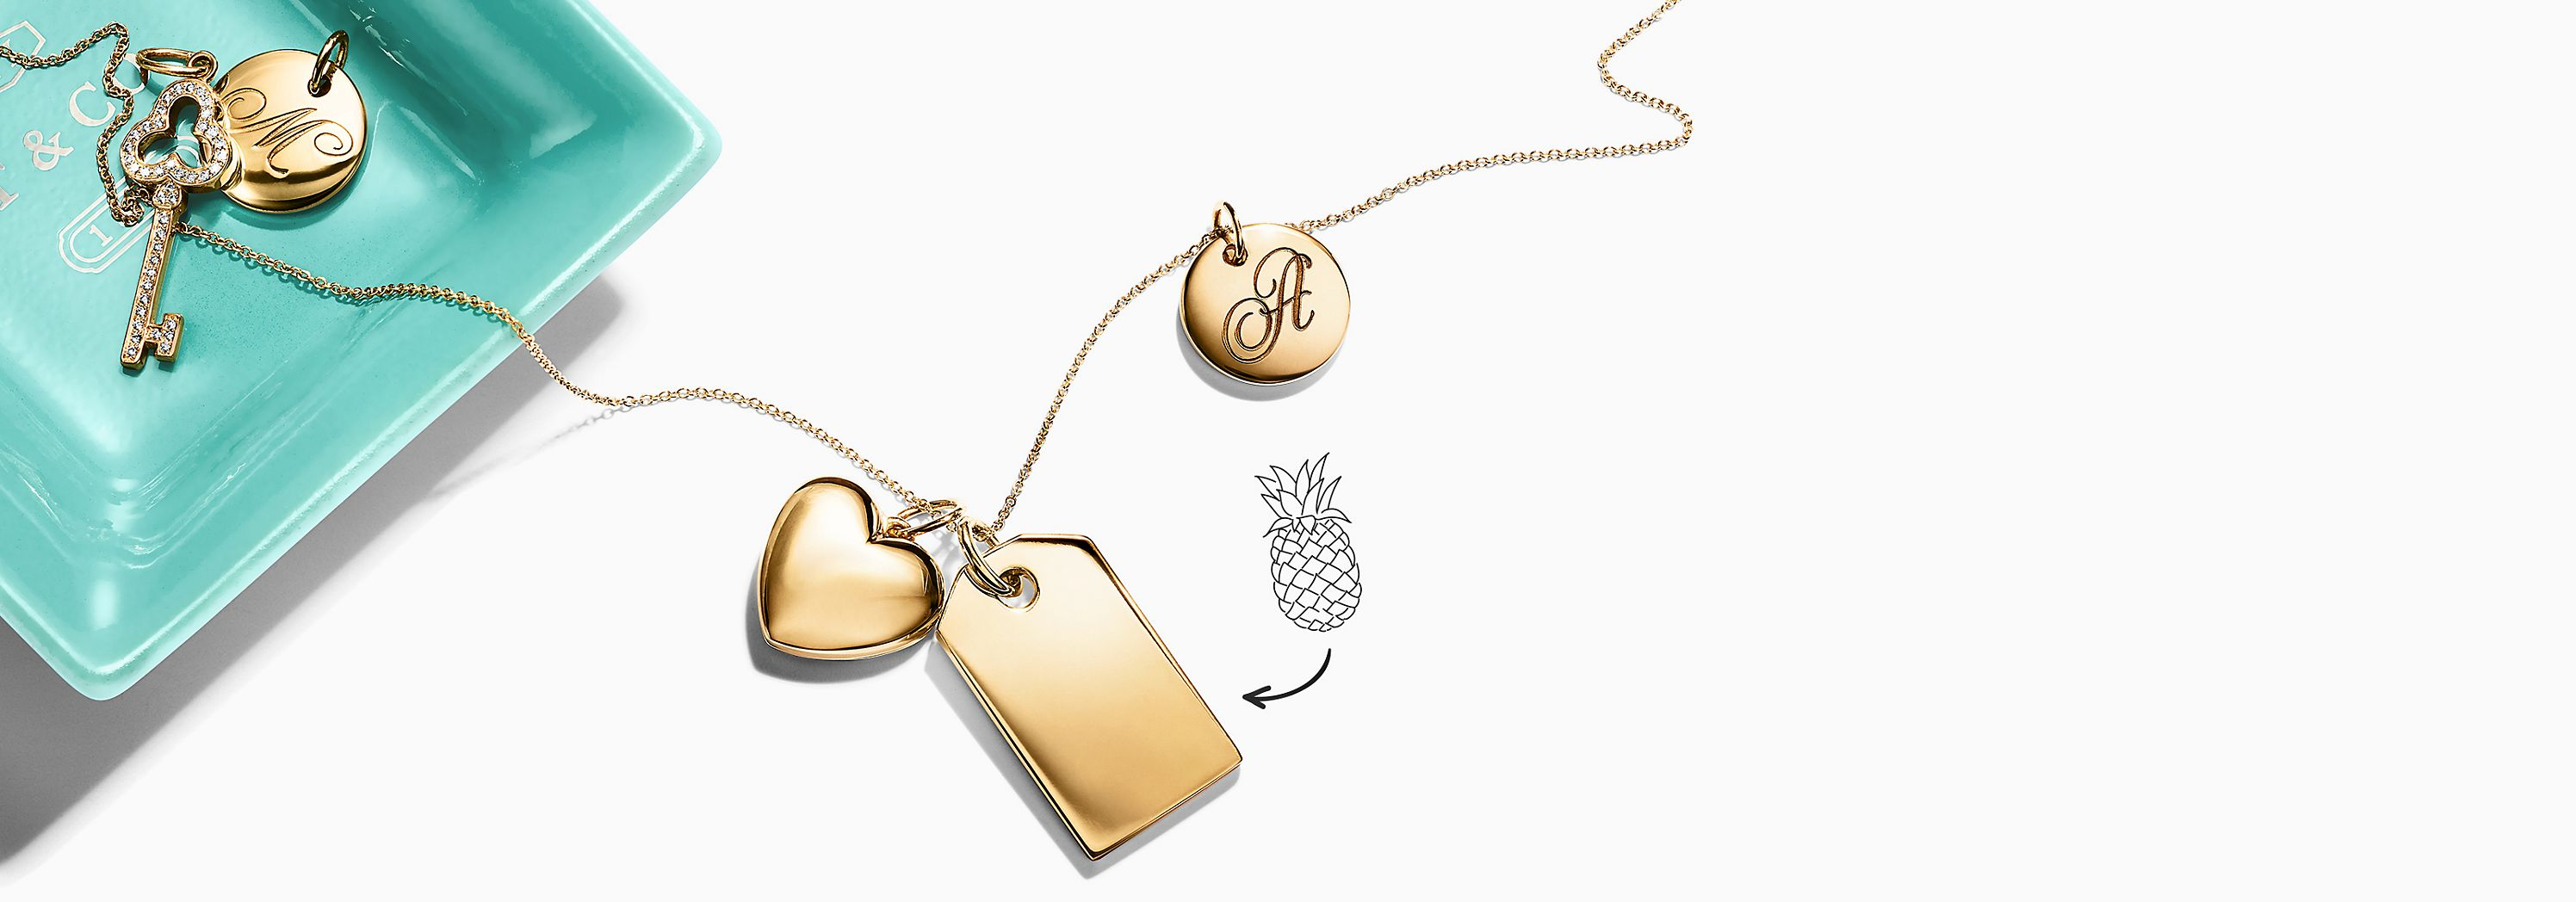 Shop Tiffany & Co. Gifts to Personalise